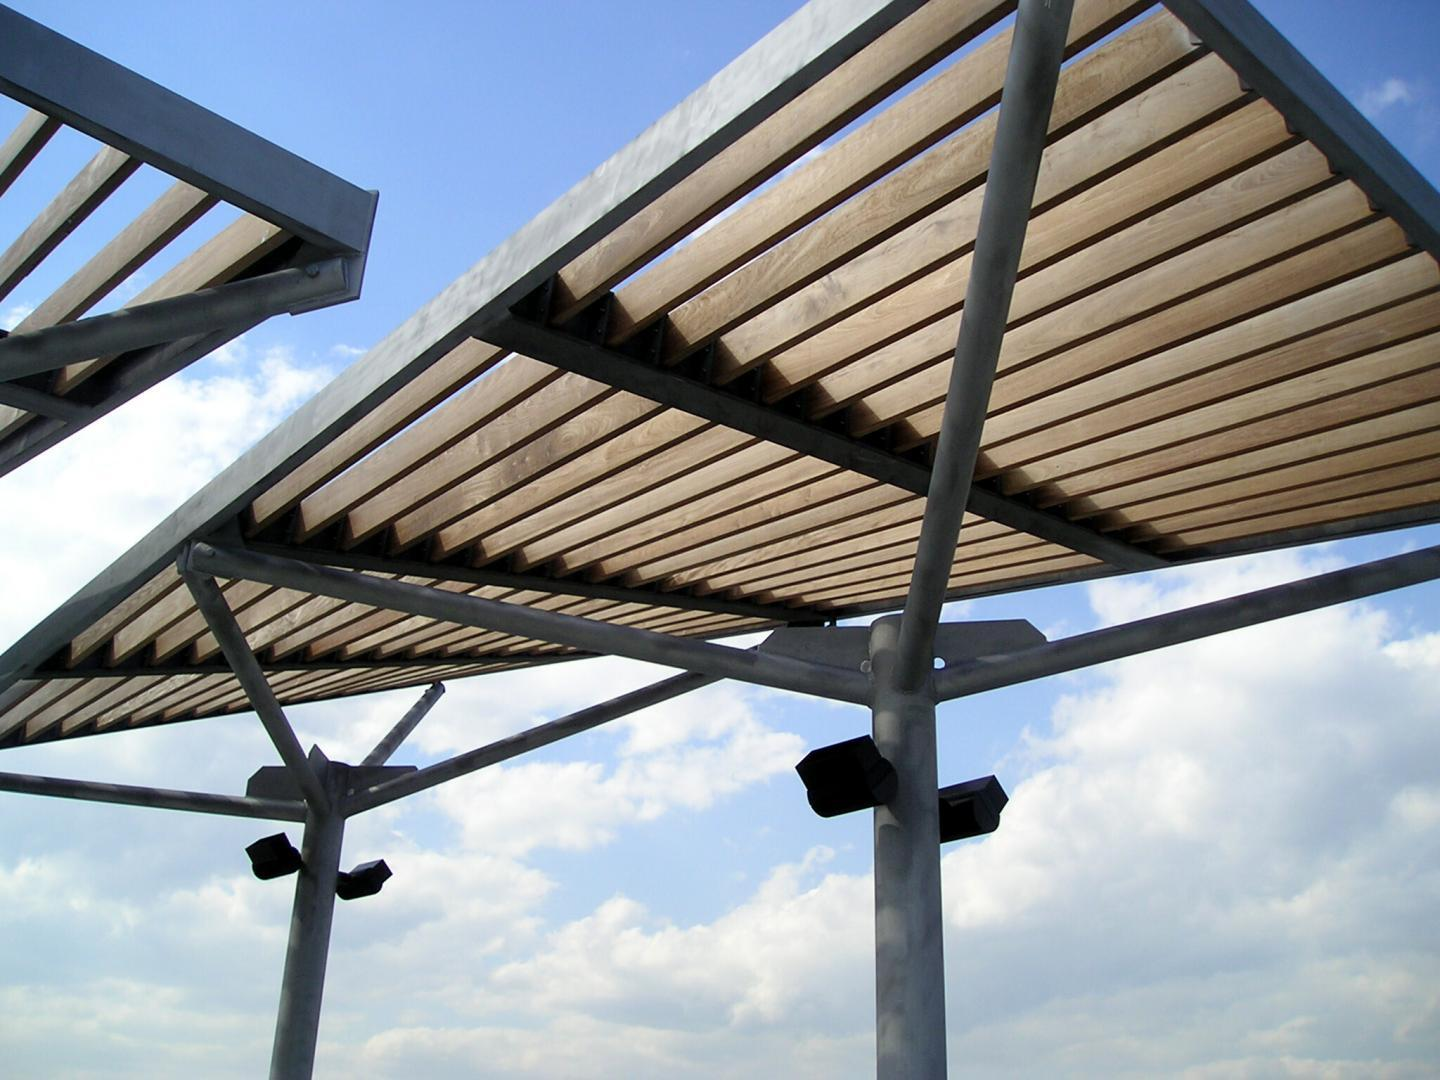 The shade structures at Pier 95